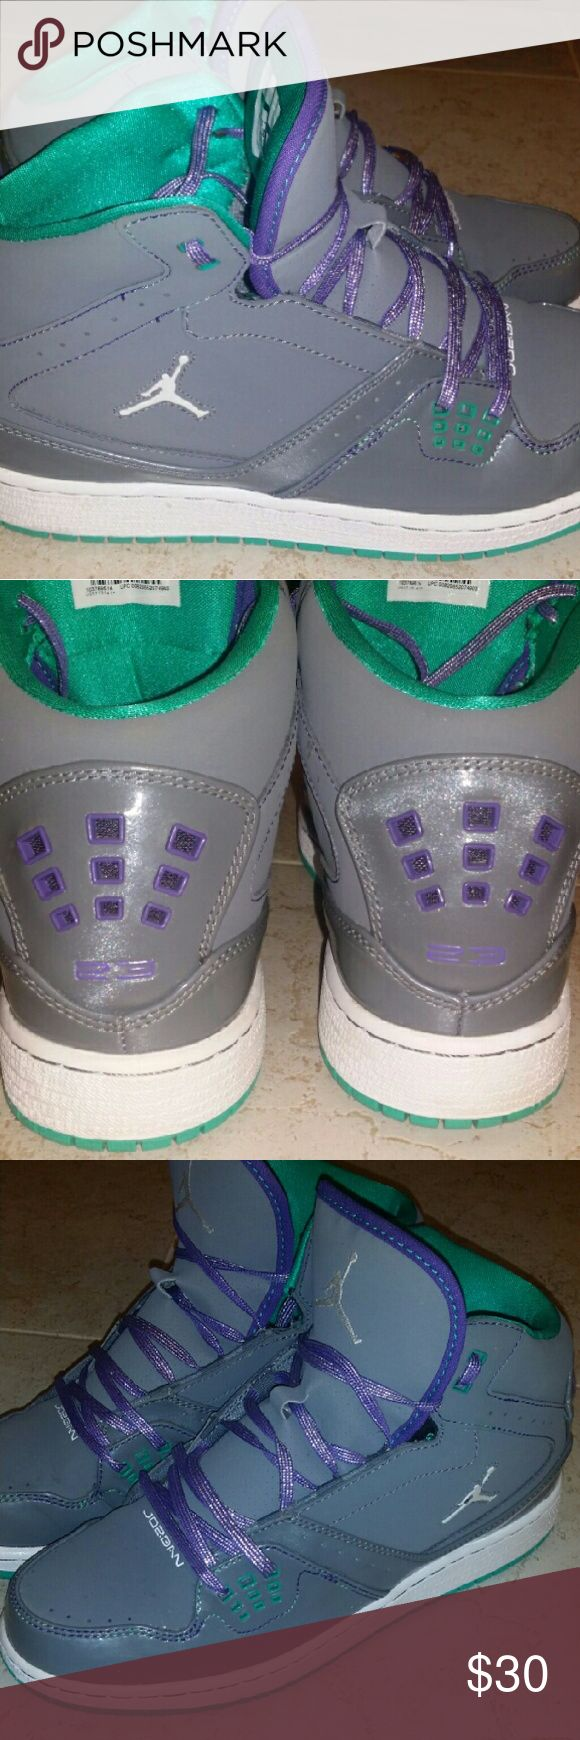 Purple, Teal and Grey Jordan Flight Club Worn one time, youth size 7, like new Jordan Shoes Athletic Shoes